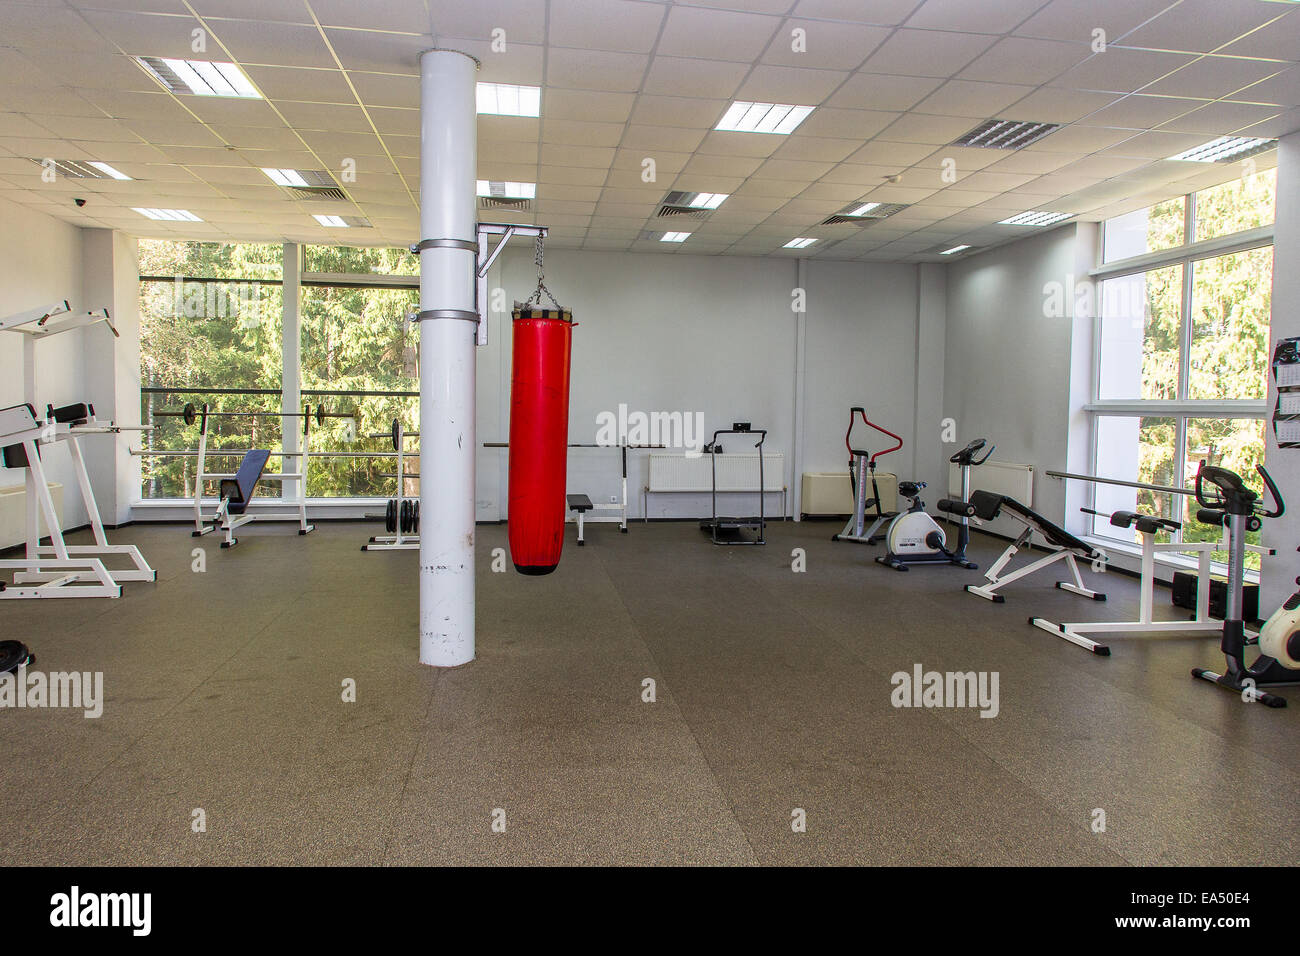 Traineger equipments in fitness center, punching ball, gym - Stock Image